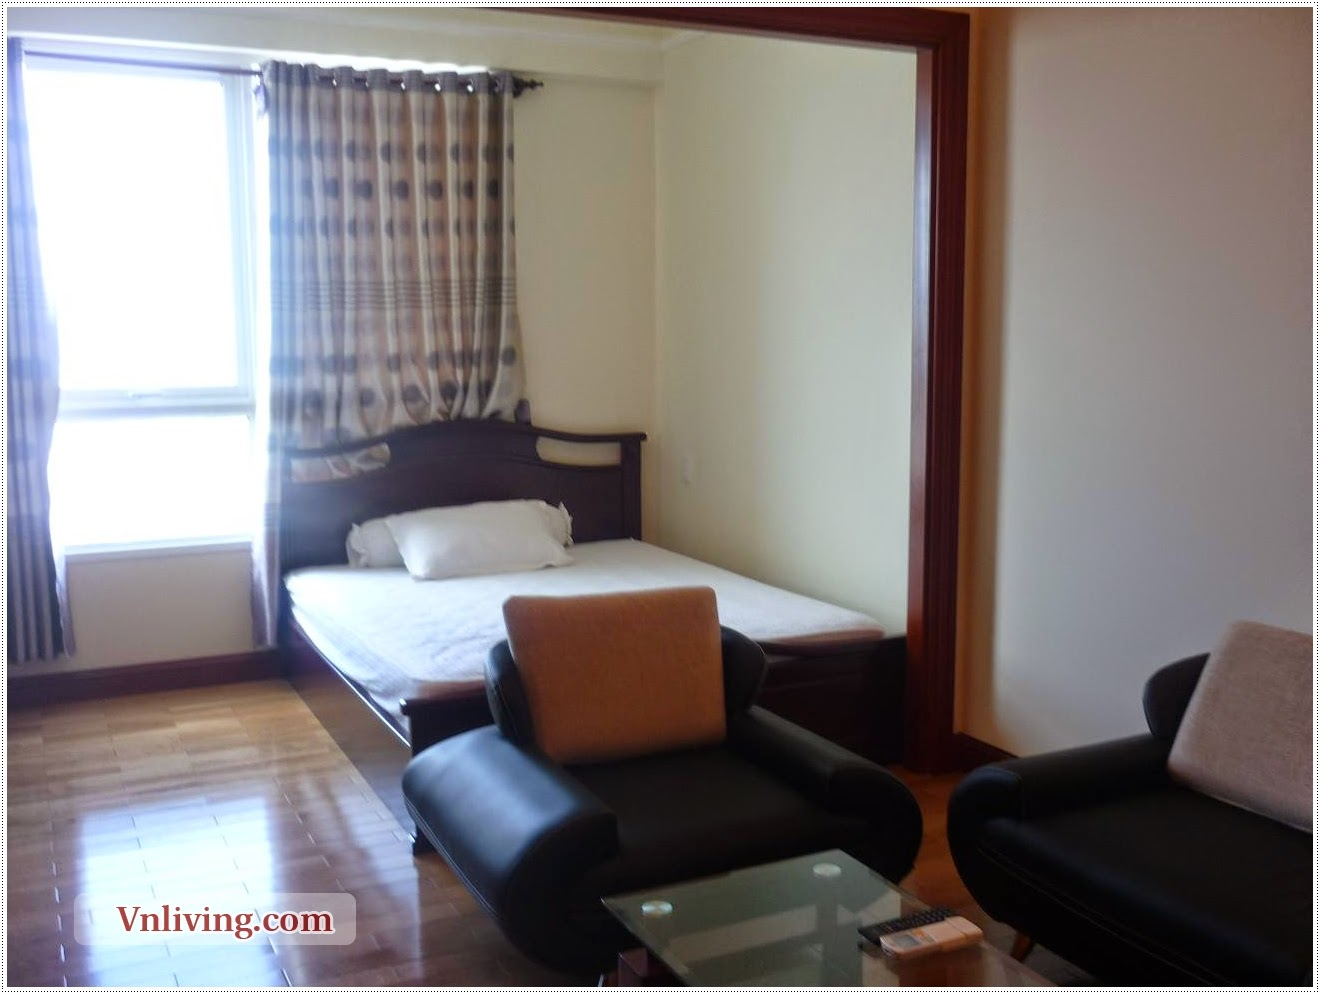 Studio apartment for rent in the manor binh thanh dist for Studio 1 bedroom apartments rent